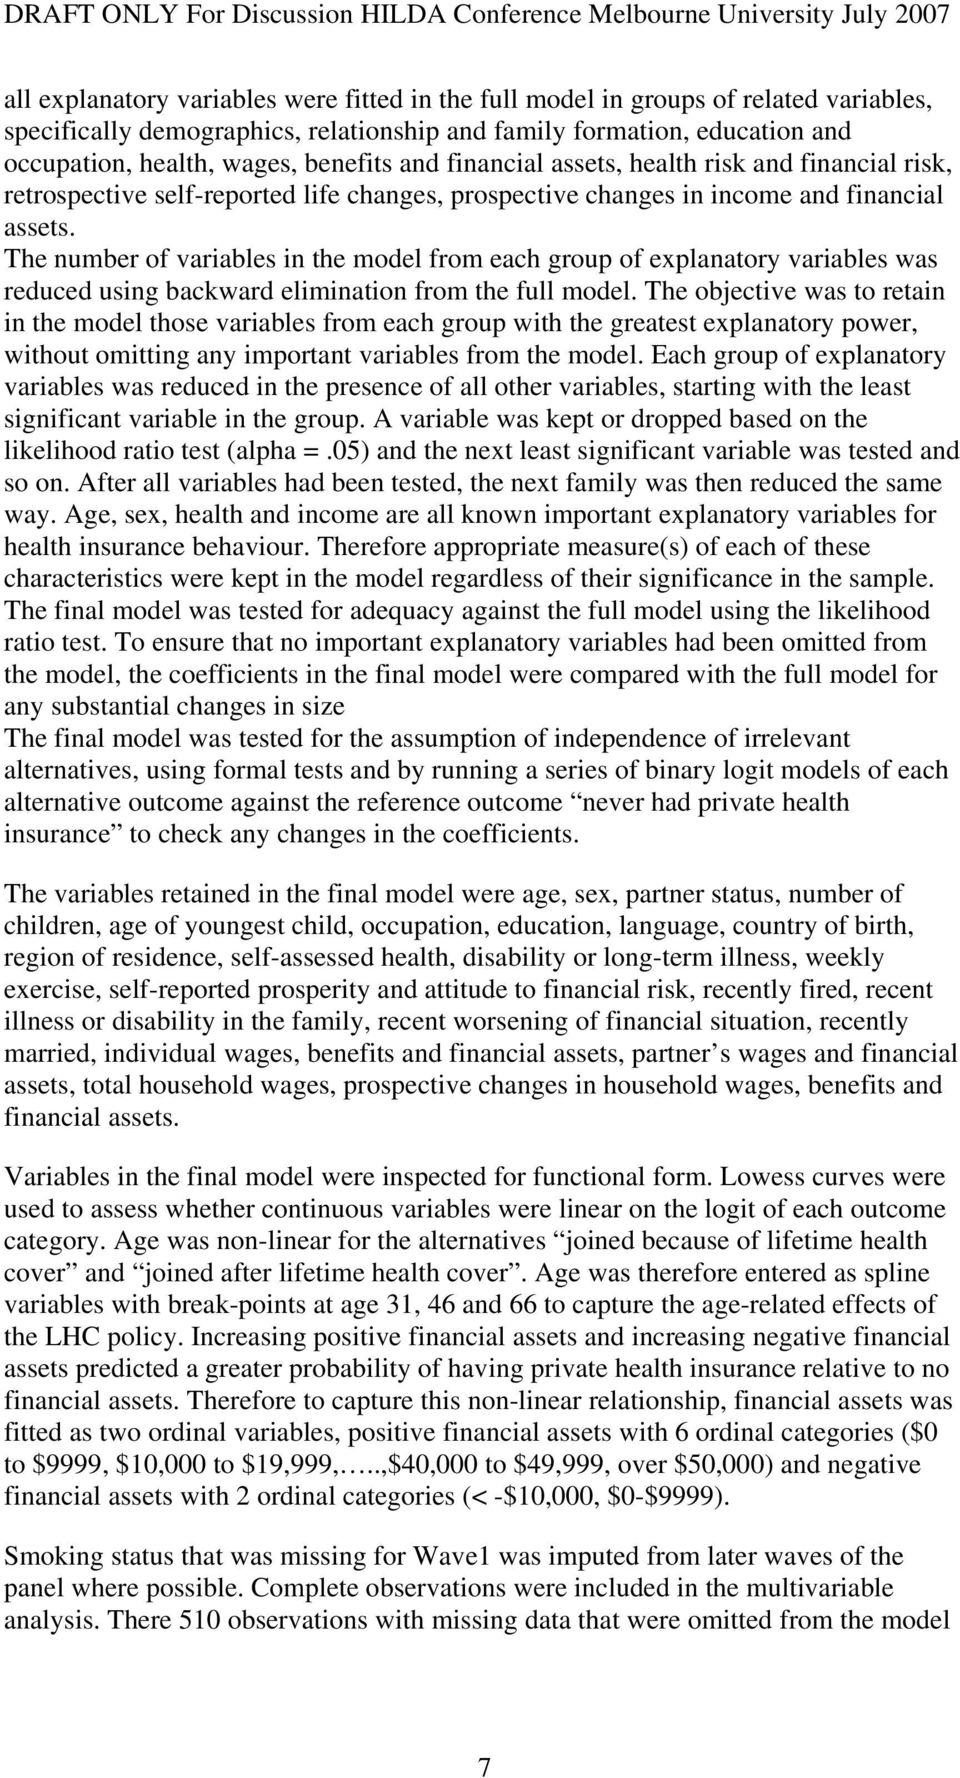 The number of variables in the model from each group of explanatory variables was reduced using backward elimination from the full model.